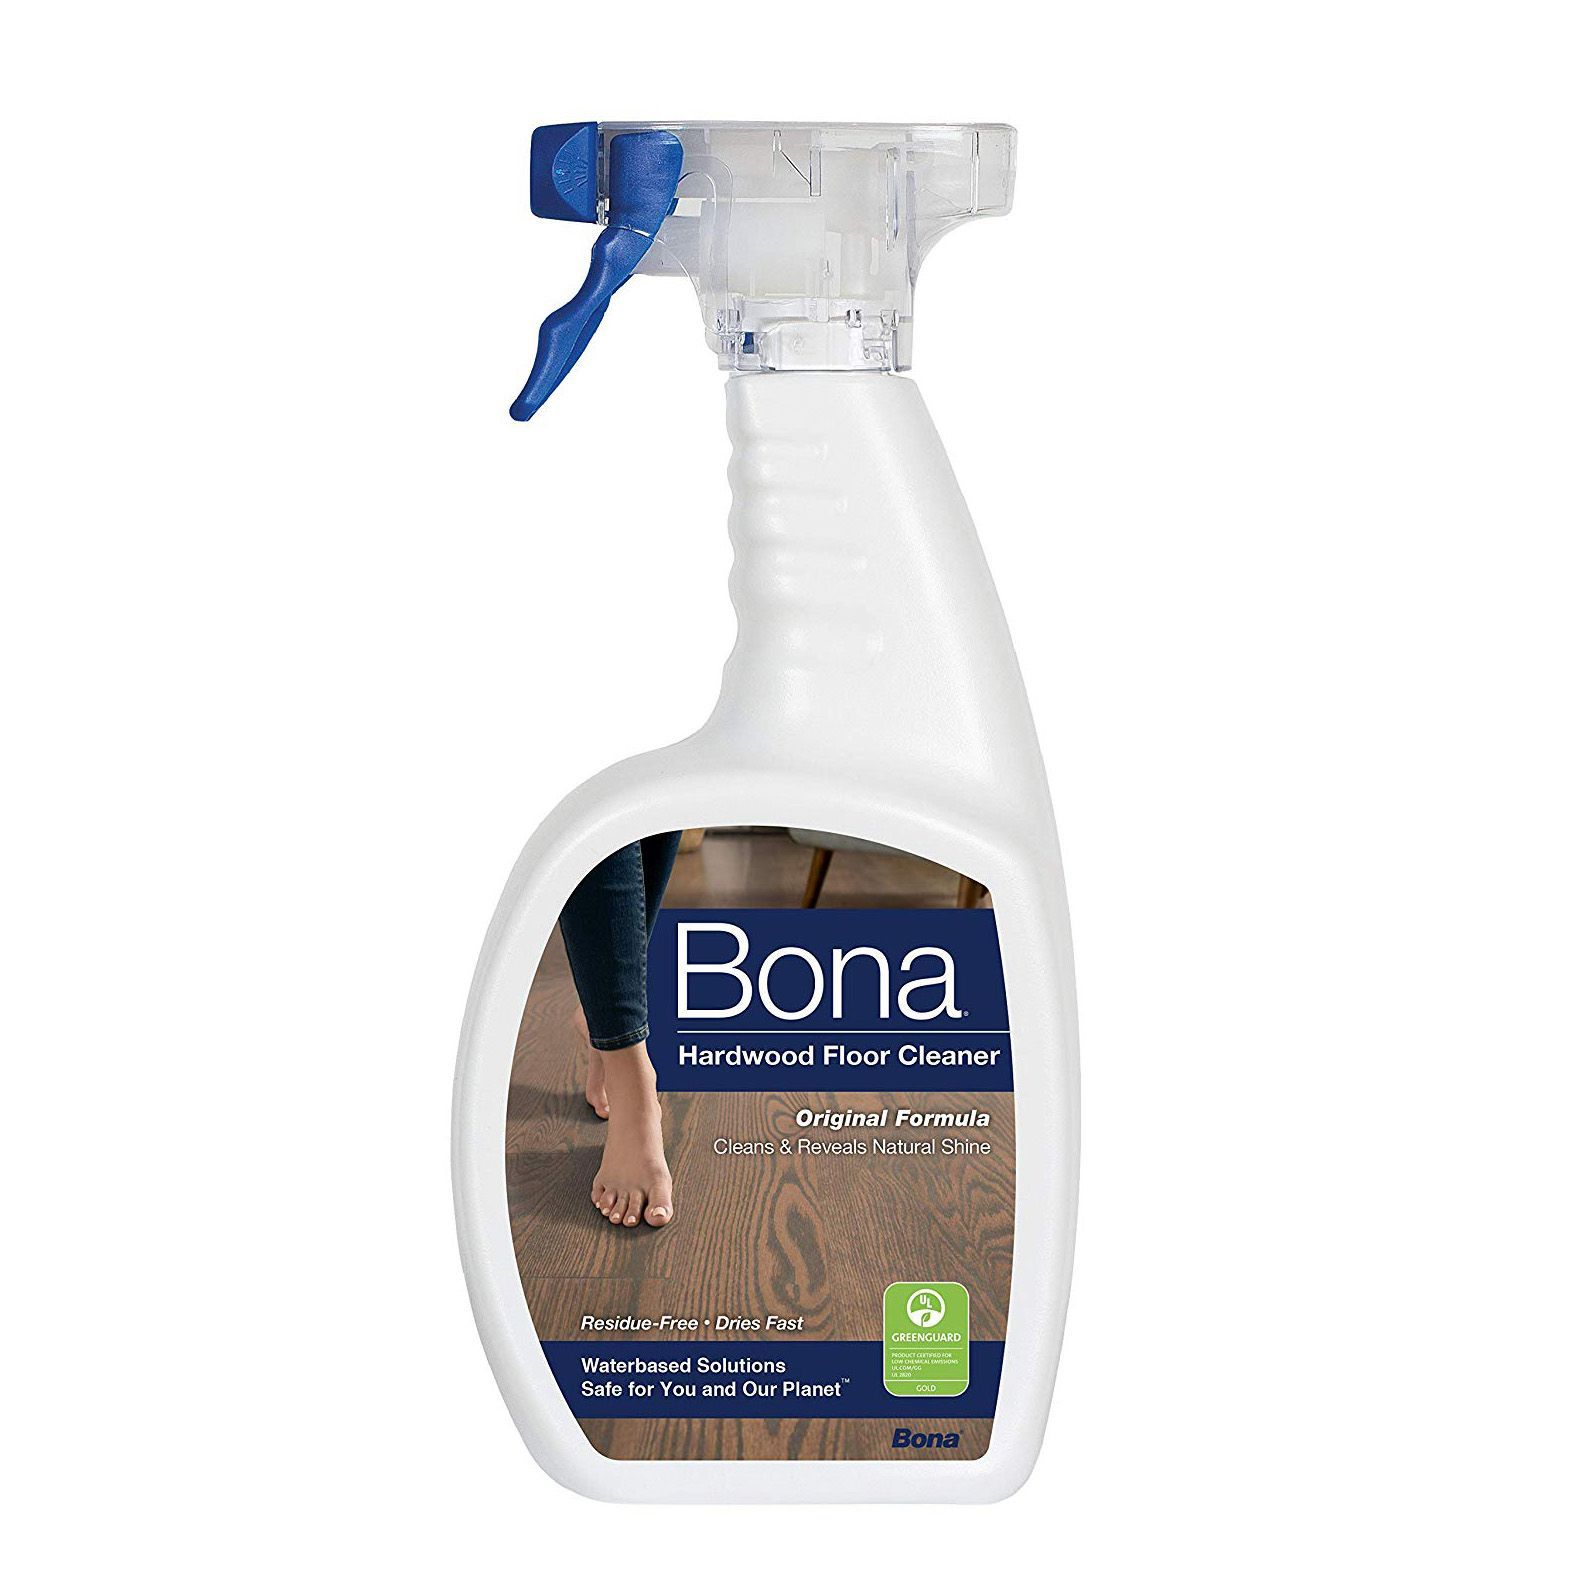 Bona Hardwood Floor Cleaner Spray